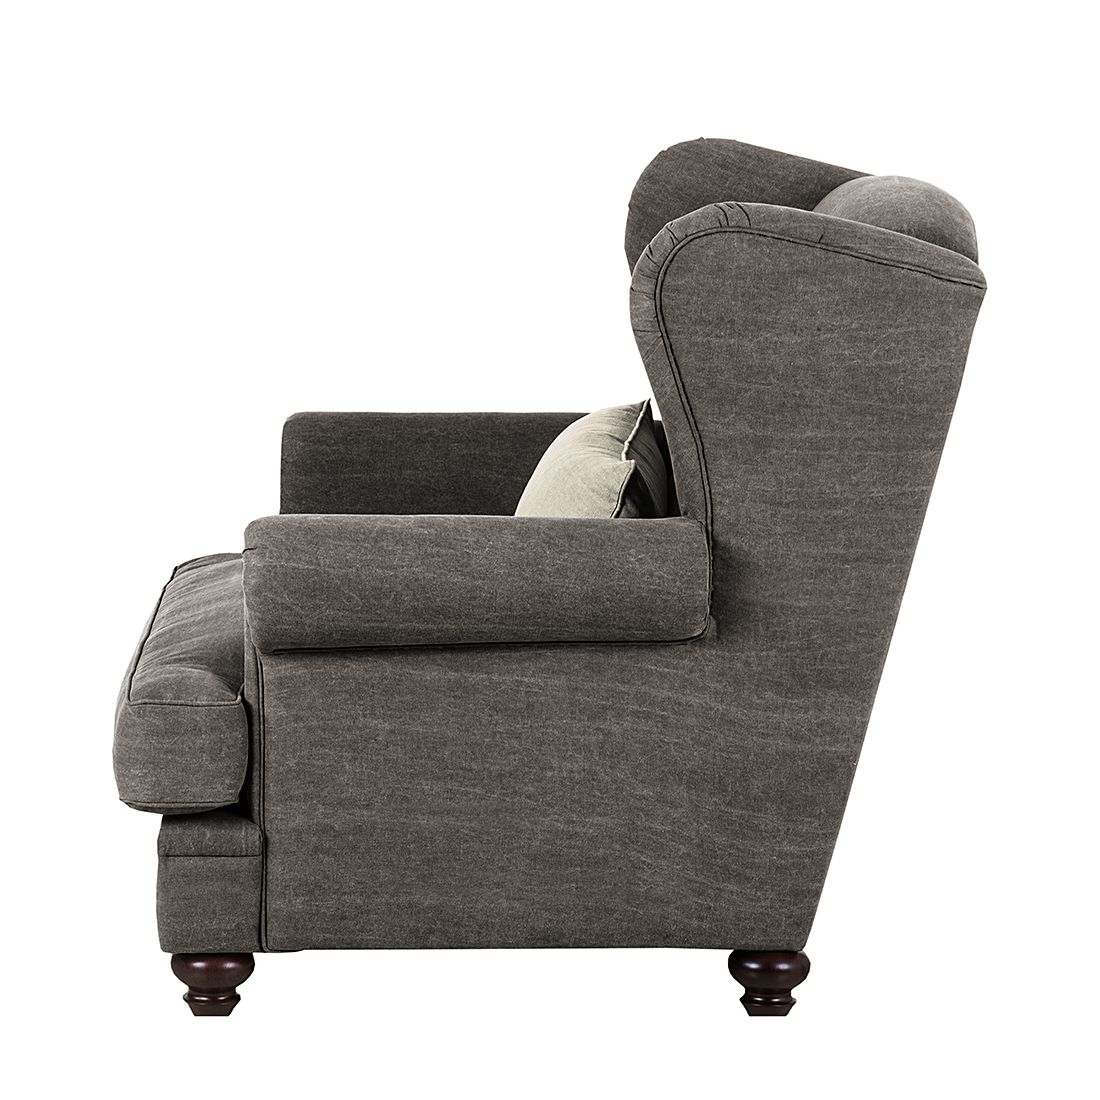 fauteuil oreilles davido tissu en coton gris fonc. Black Bedroom Furniture Sets. Home Design Ideas